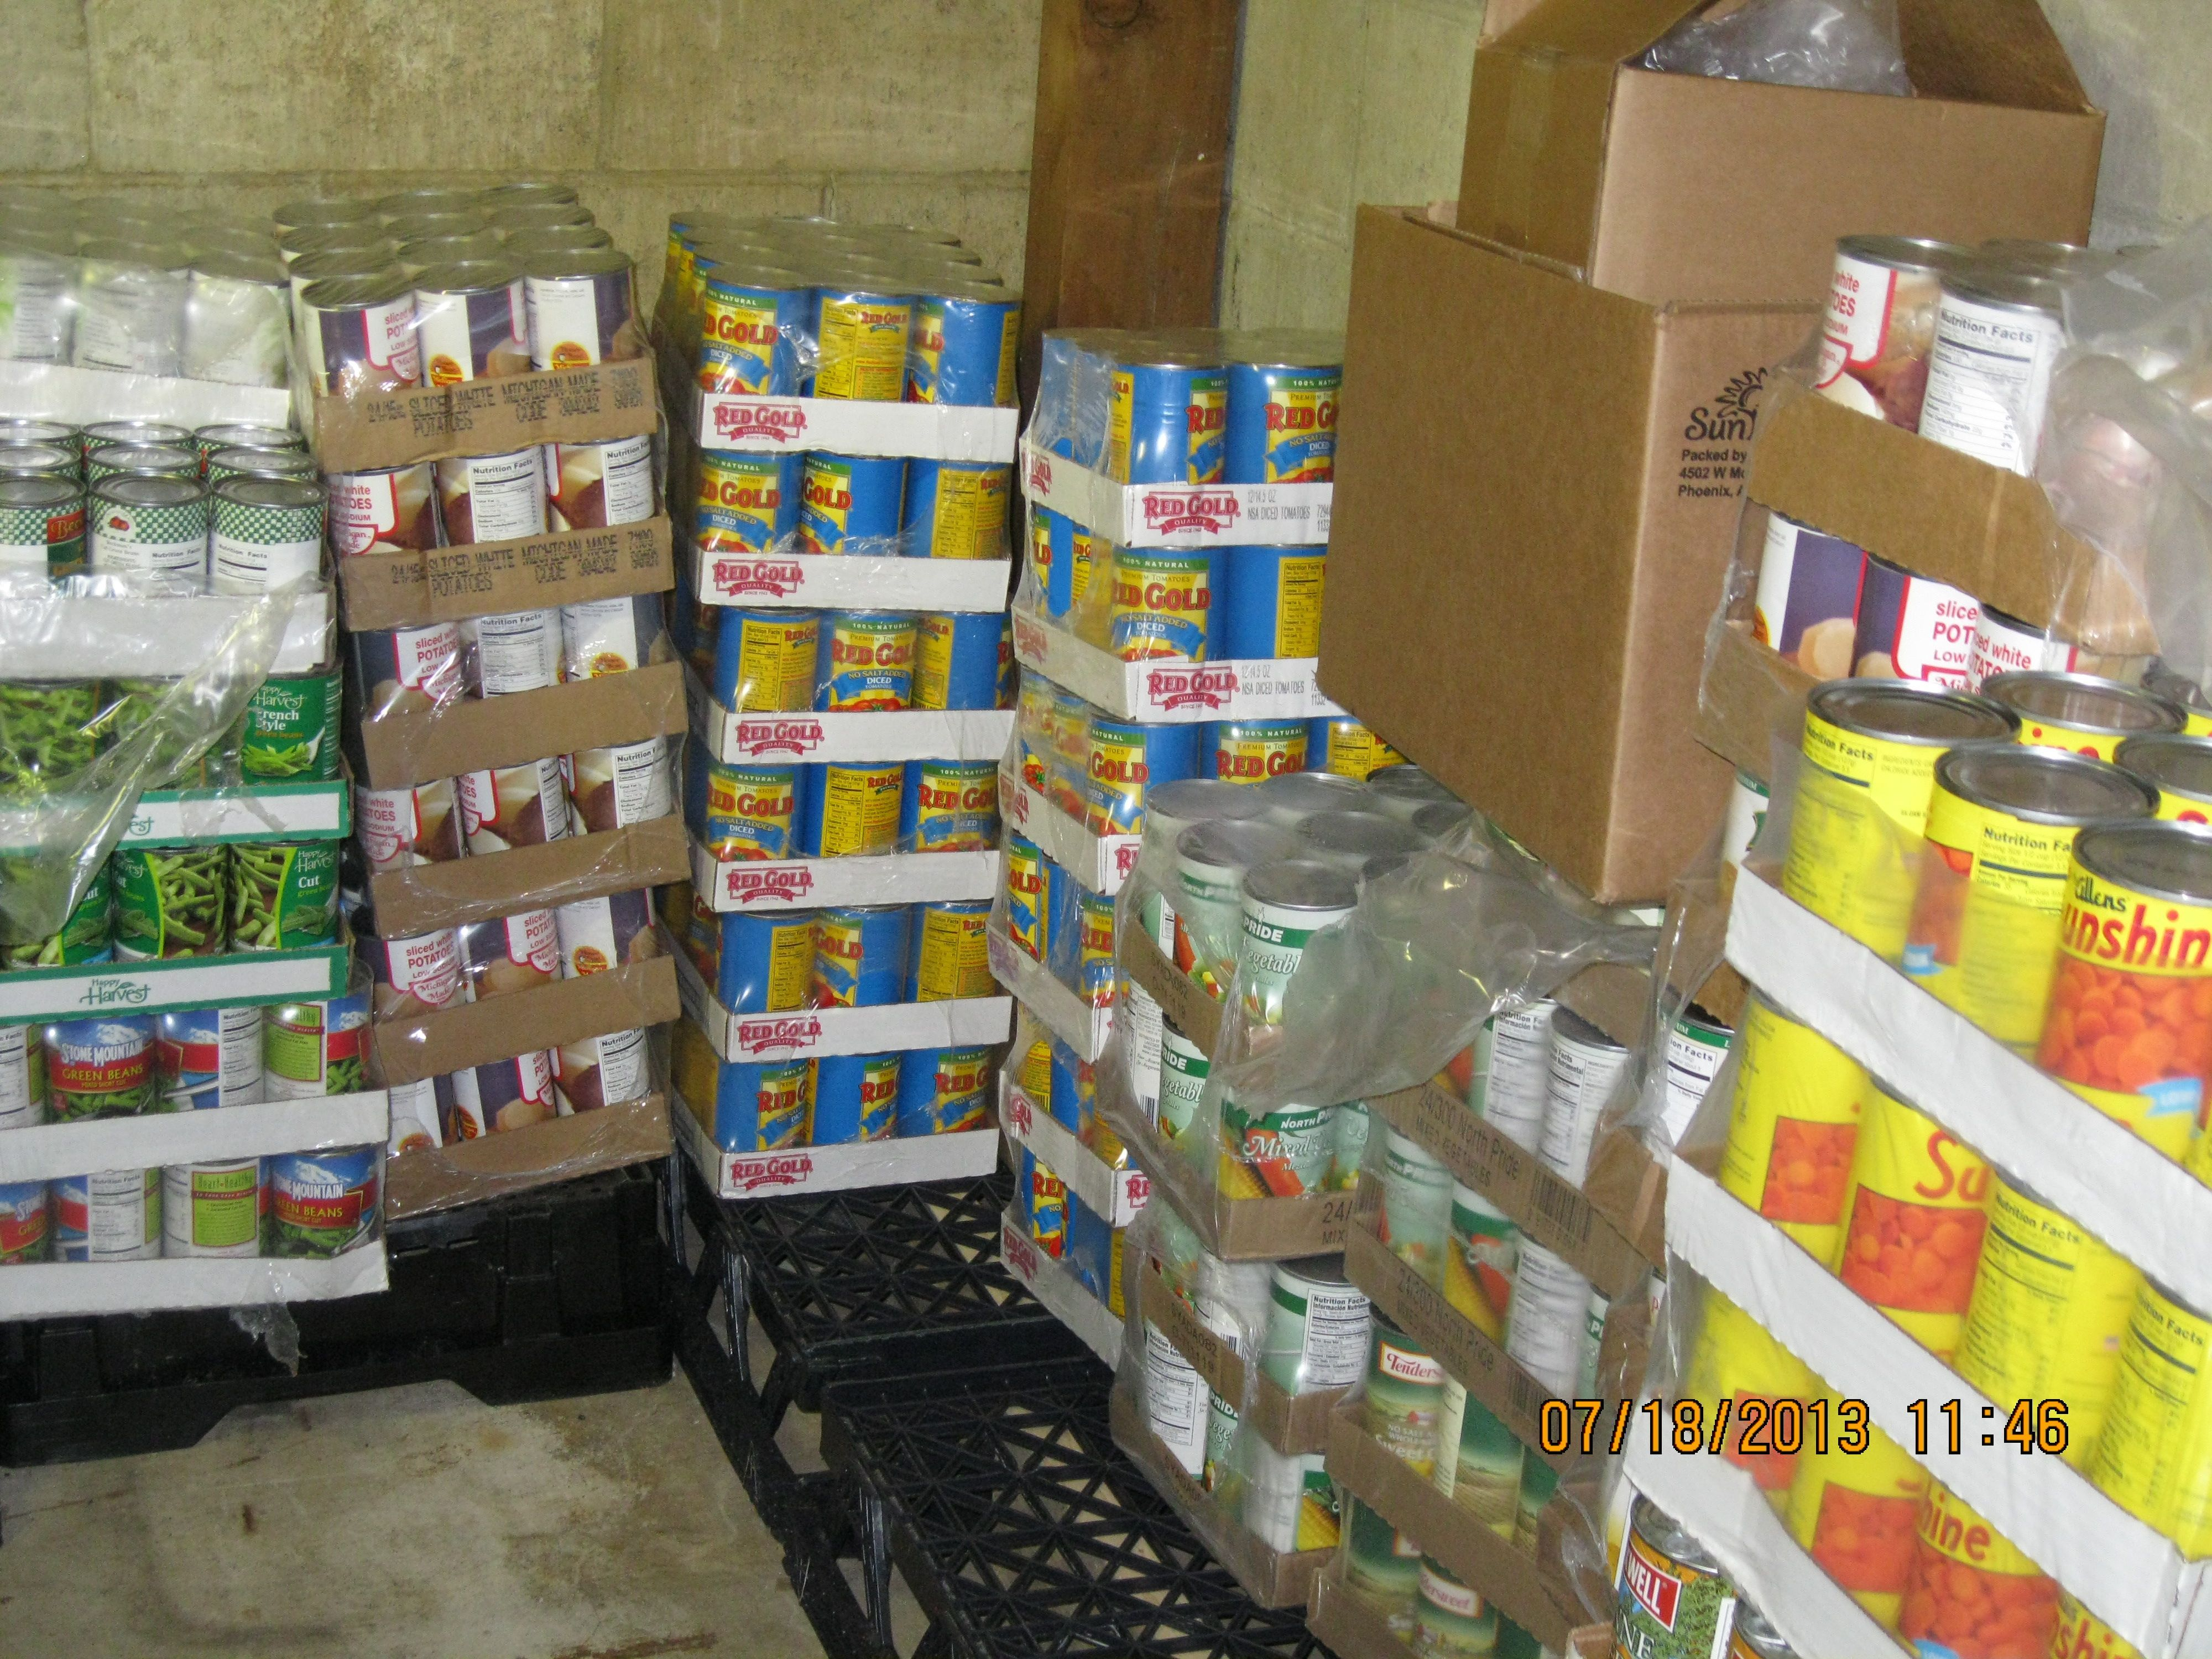 North East Food Pantry